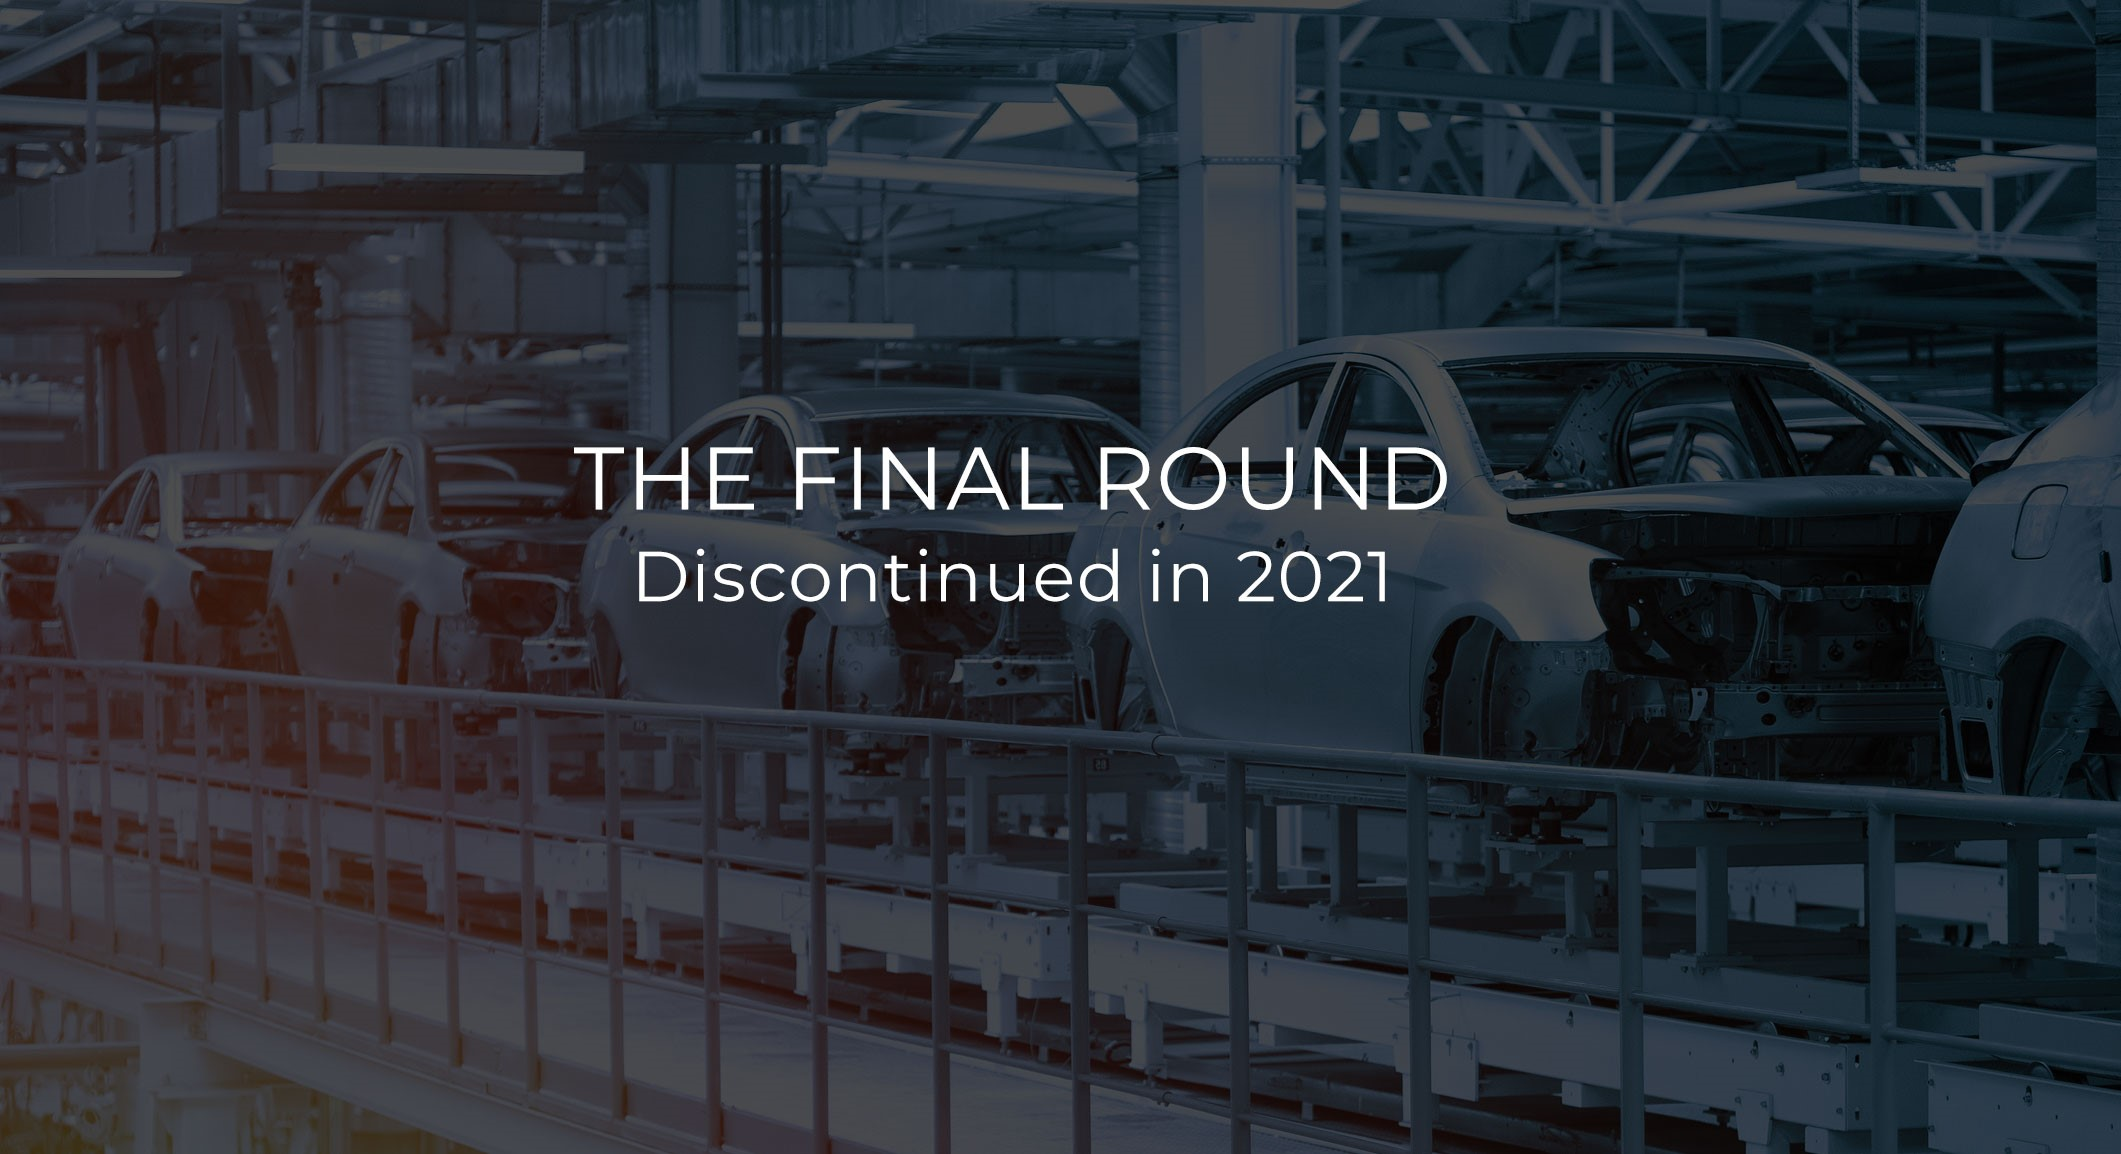 The Final Round 2021